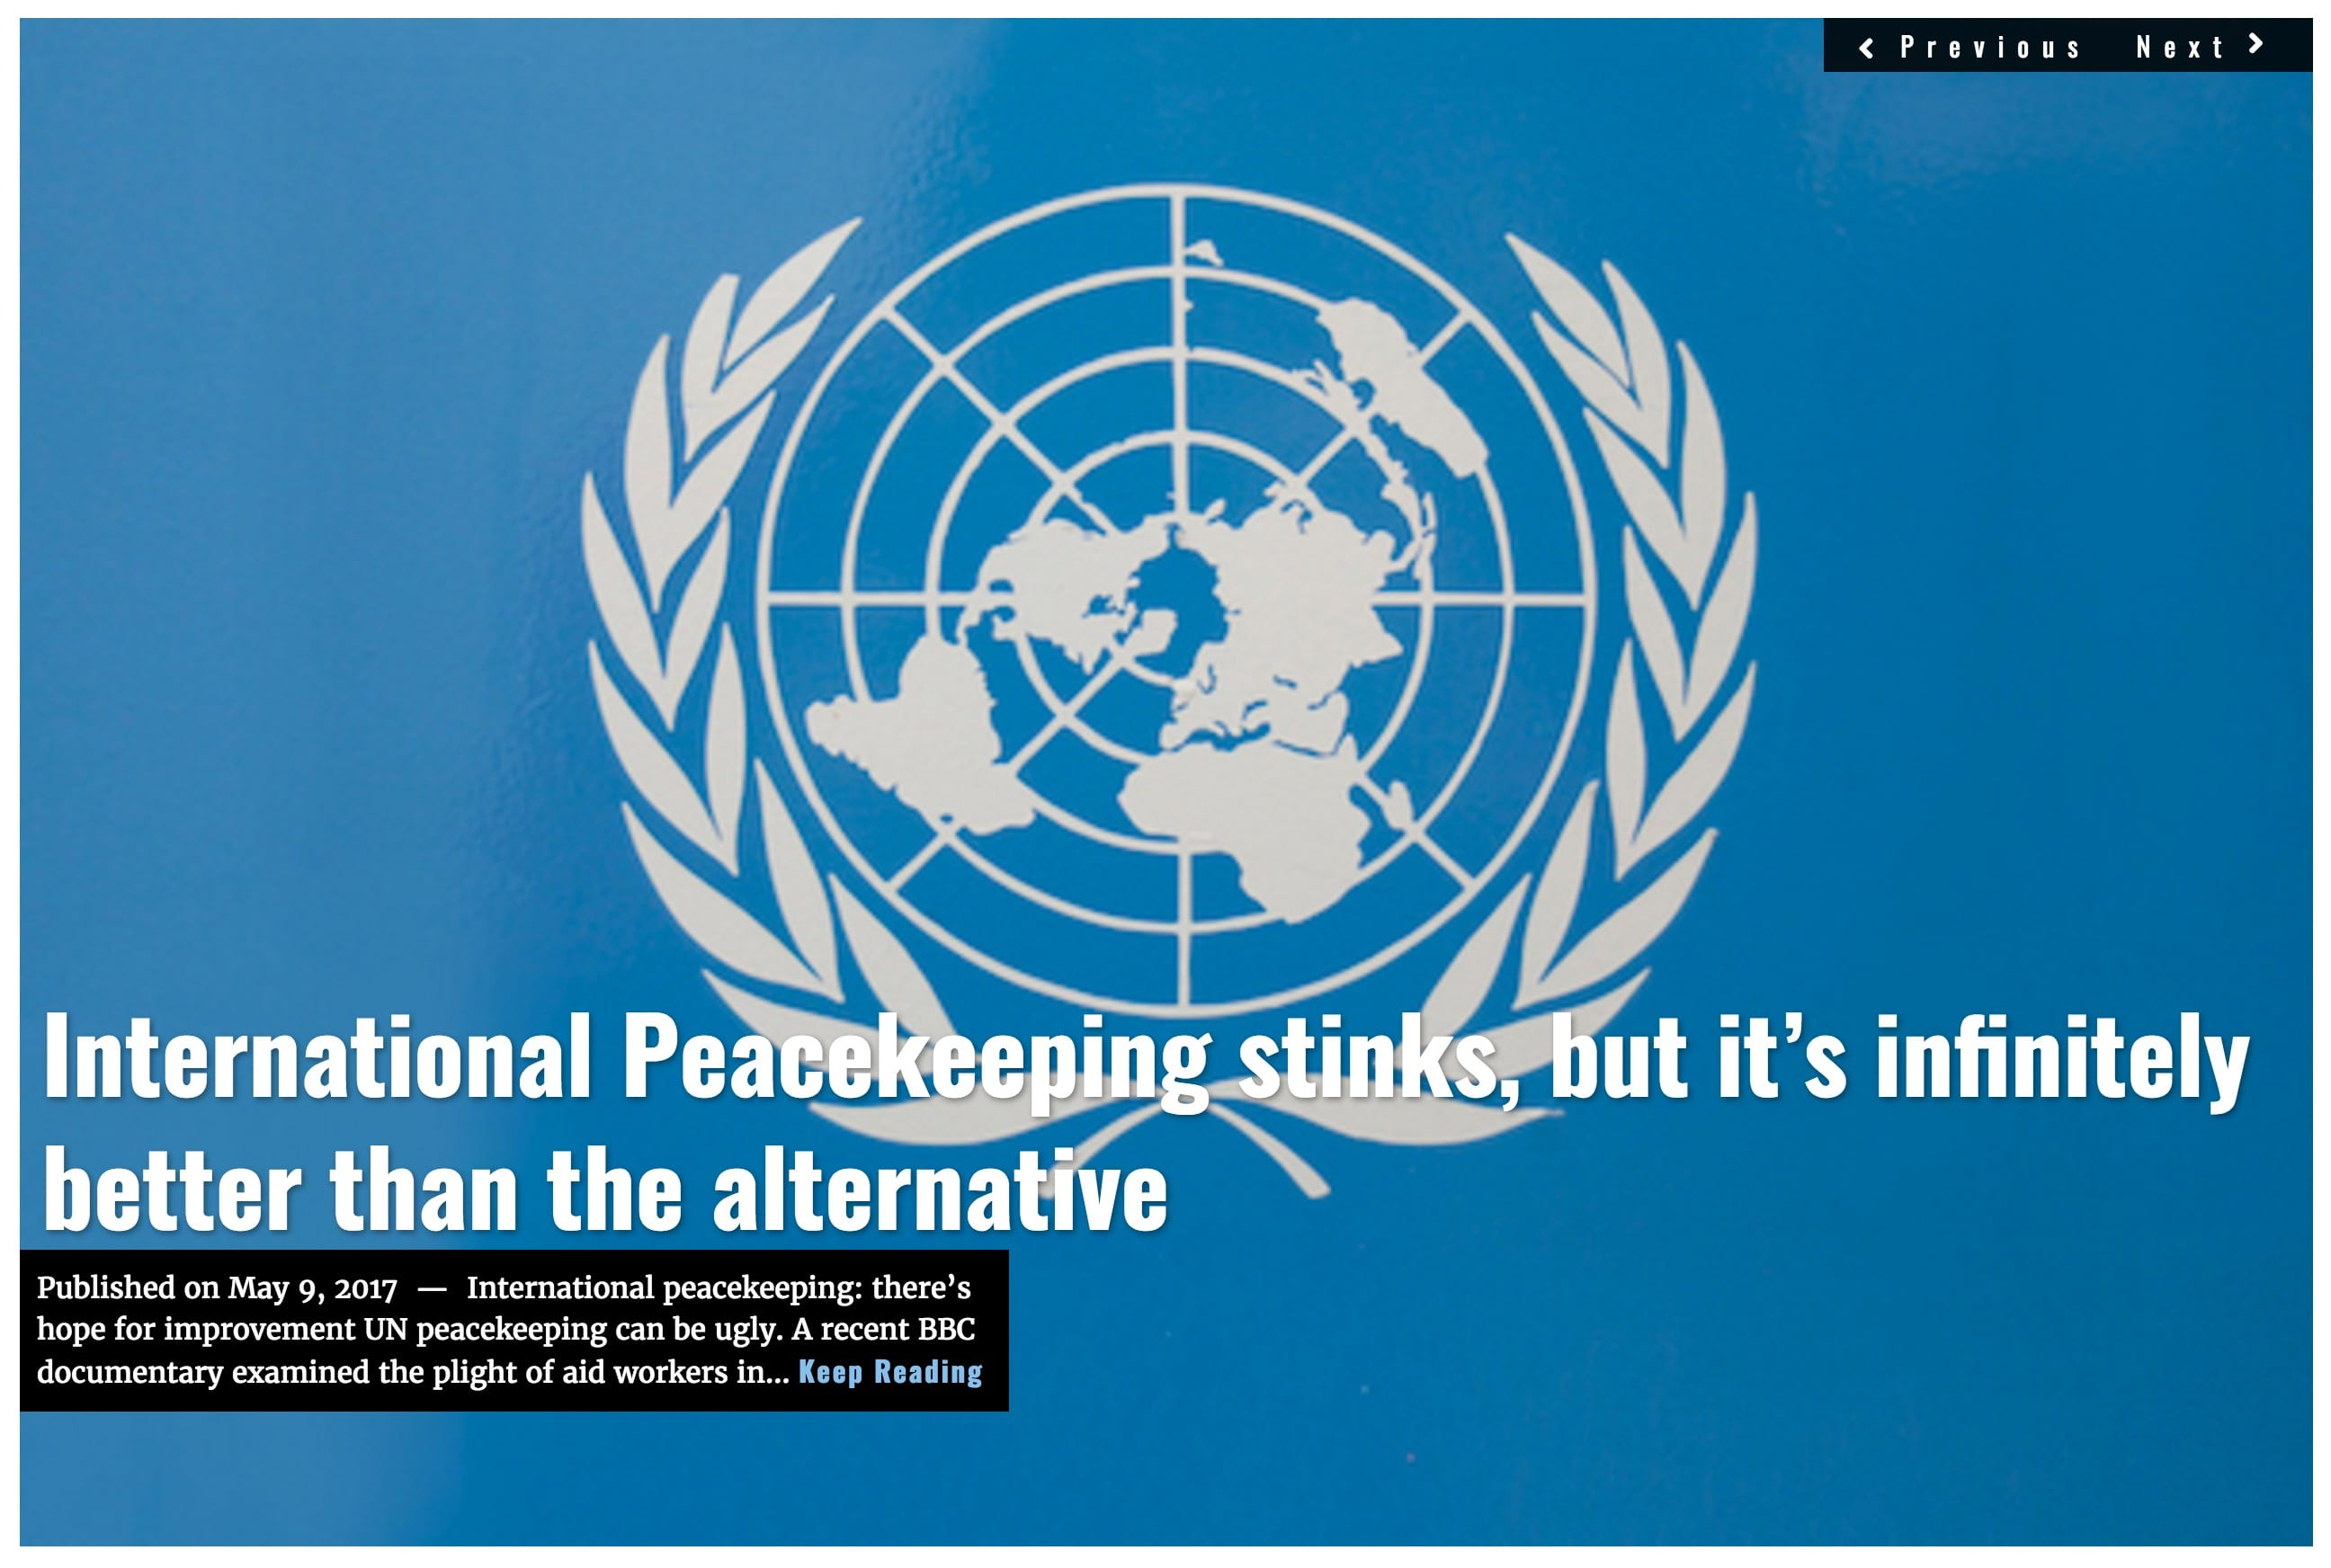 Image Lima Charlie News Headline UN peacekeeping D.Brooks MAY9